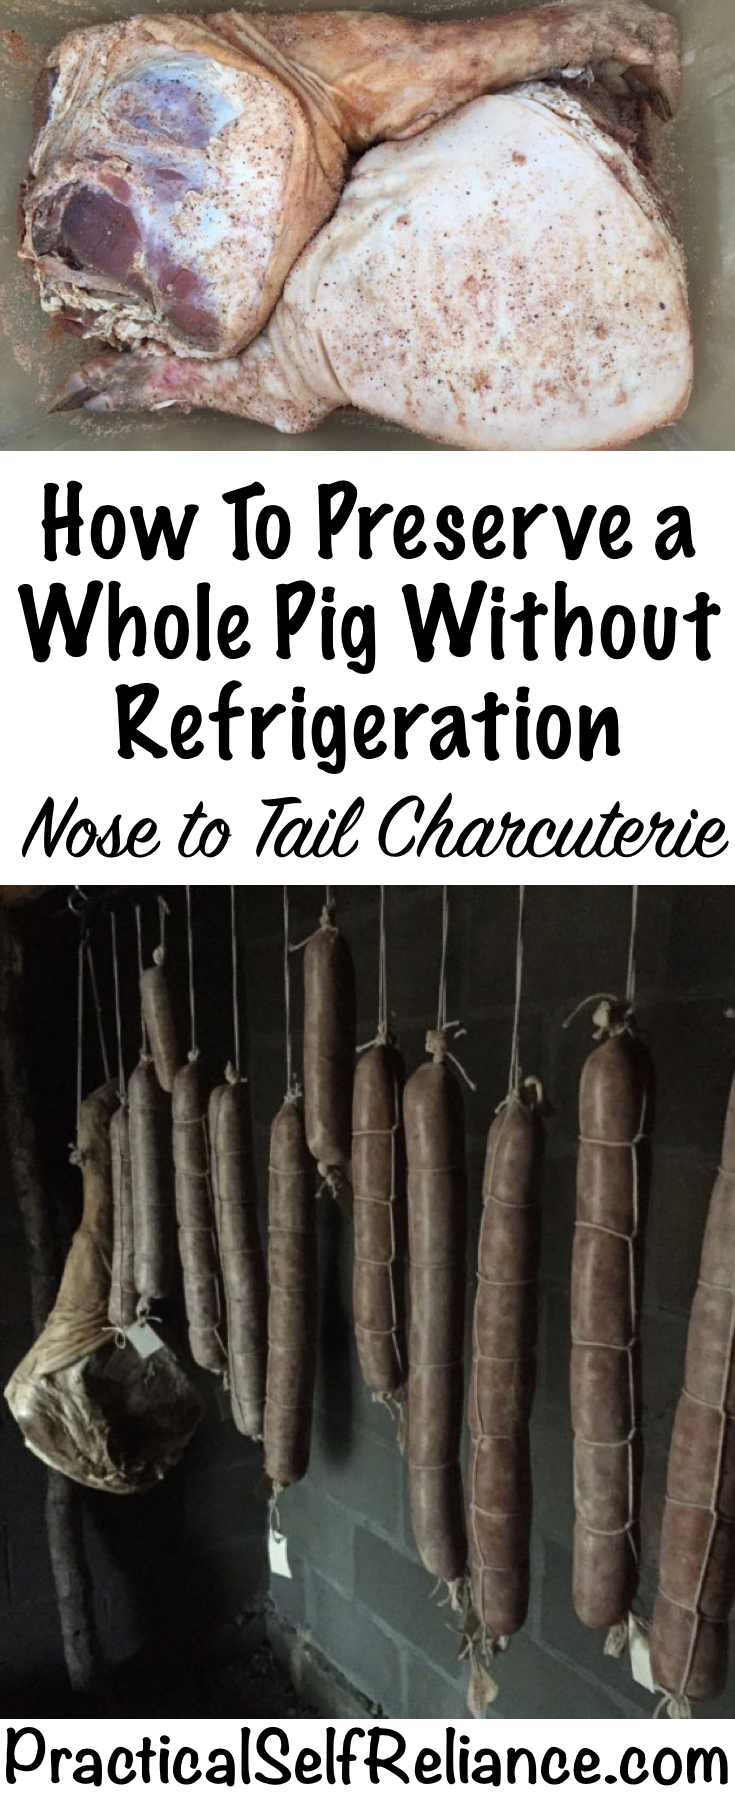 How To Preserve a Whole Pig Without Refrigeration - Nose to Tail Charcuterie